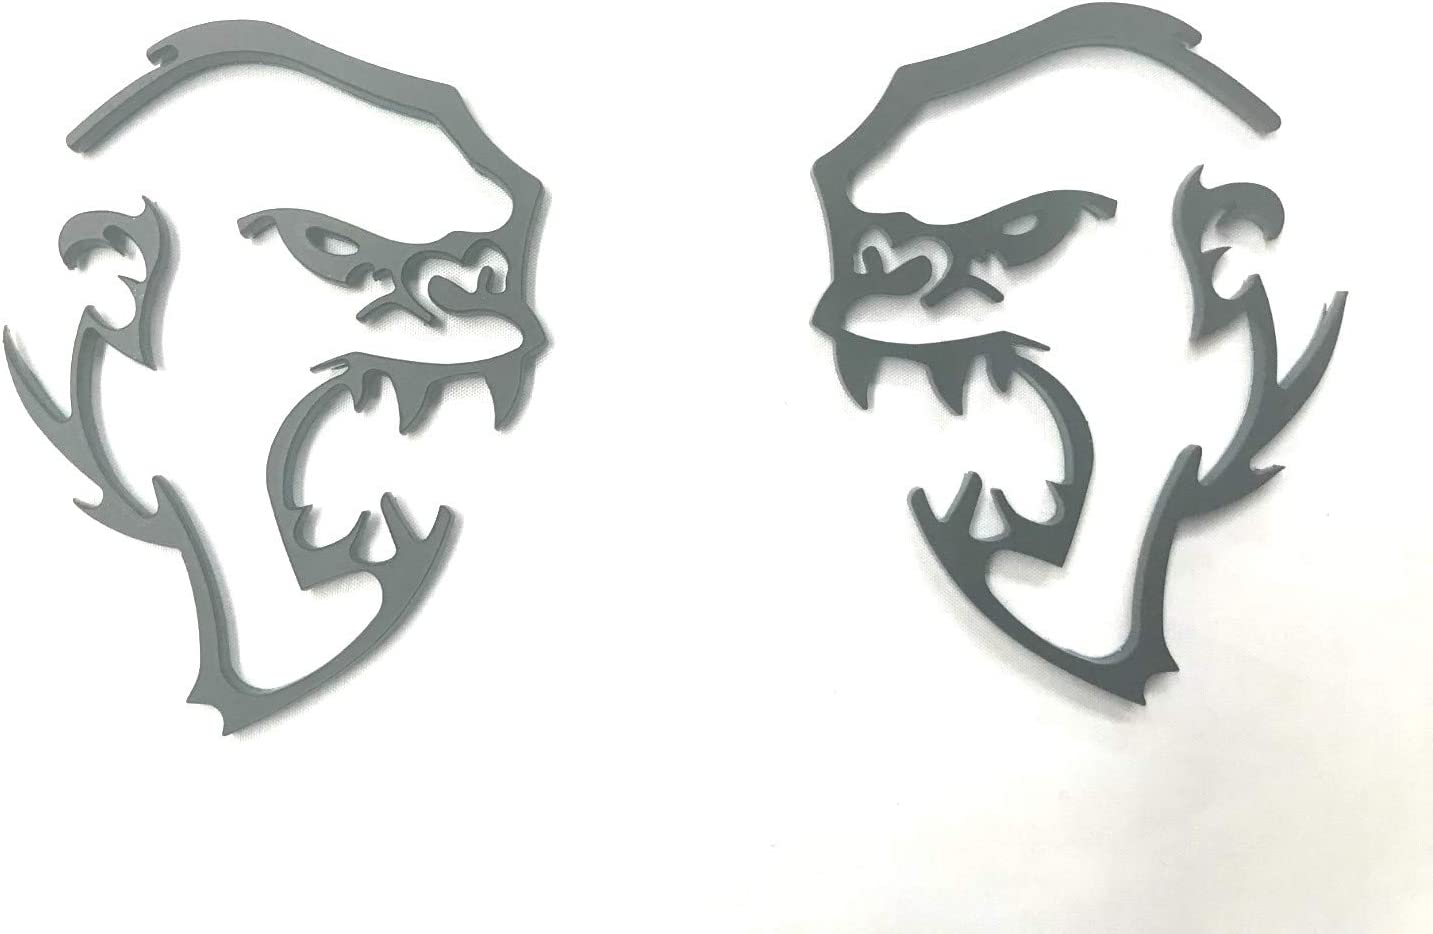 Auggies Pair 2 Custom Hellephant Hemi 426 Super Angry SRT Fender Side Emblem Badges For Challenger Charger Gift Matte Black